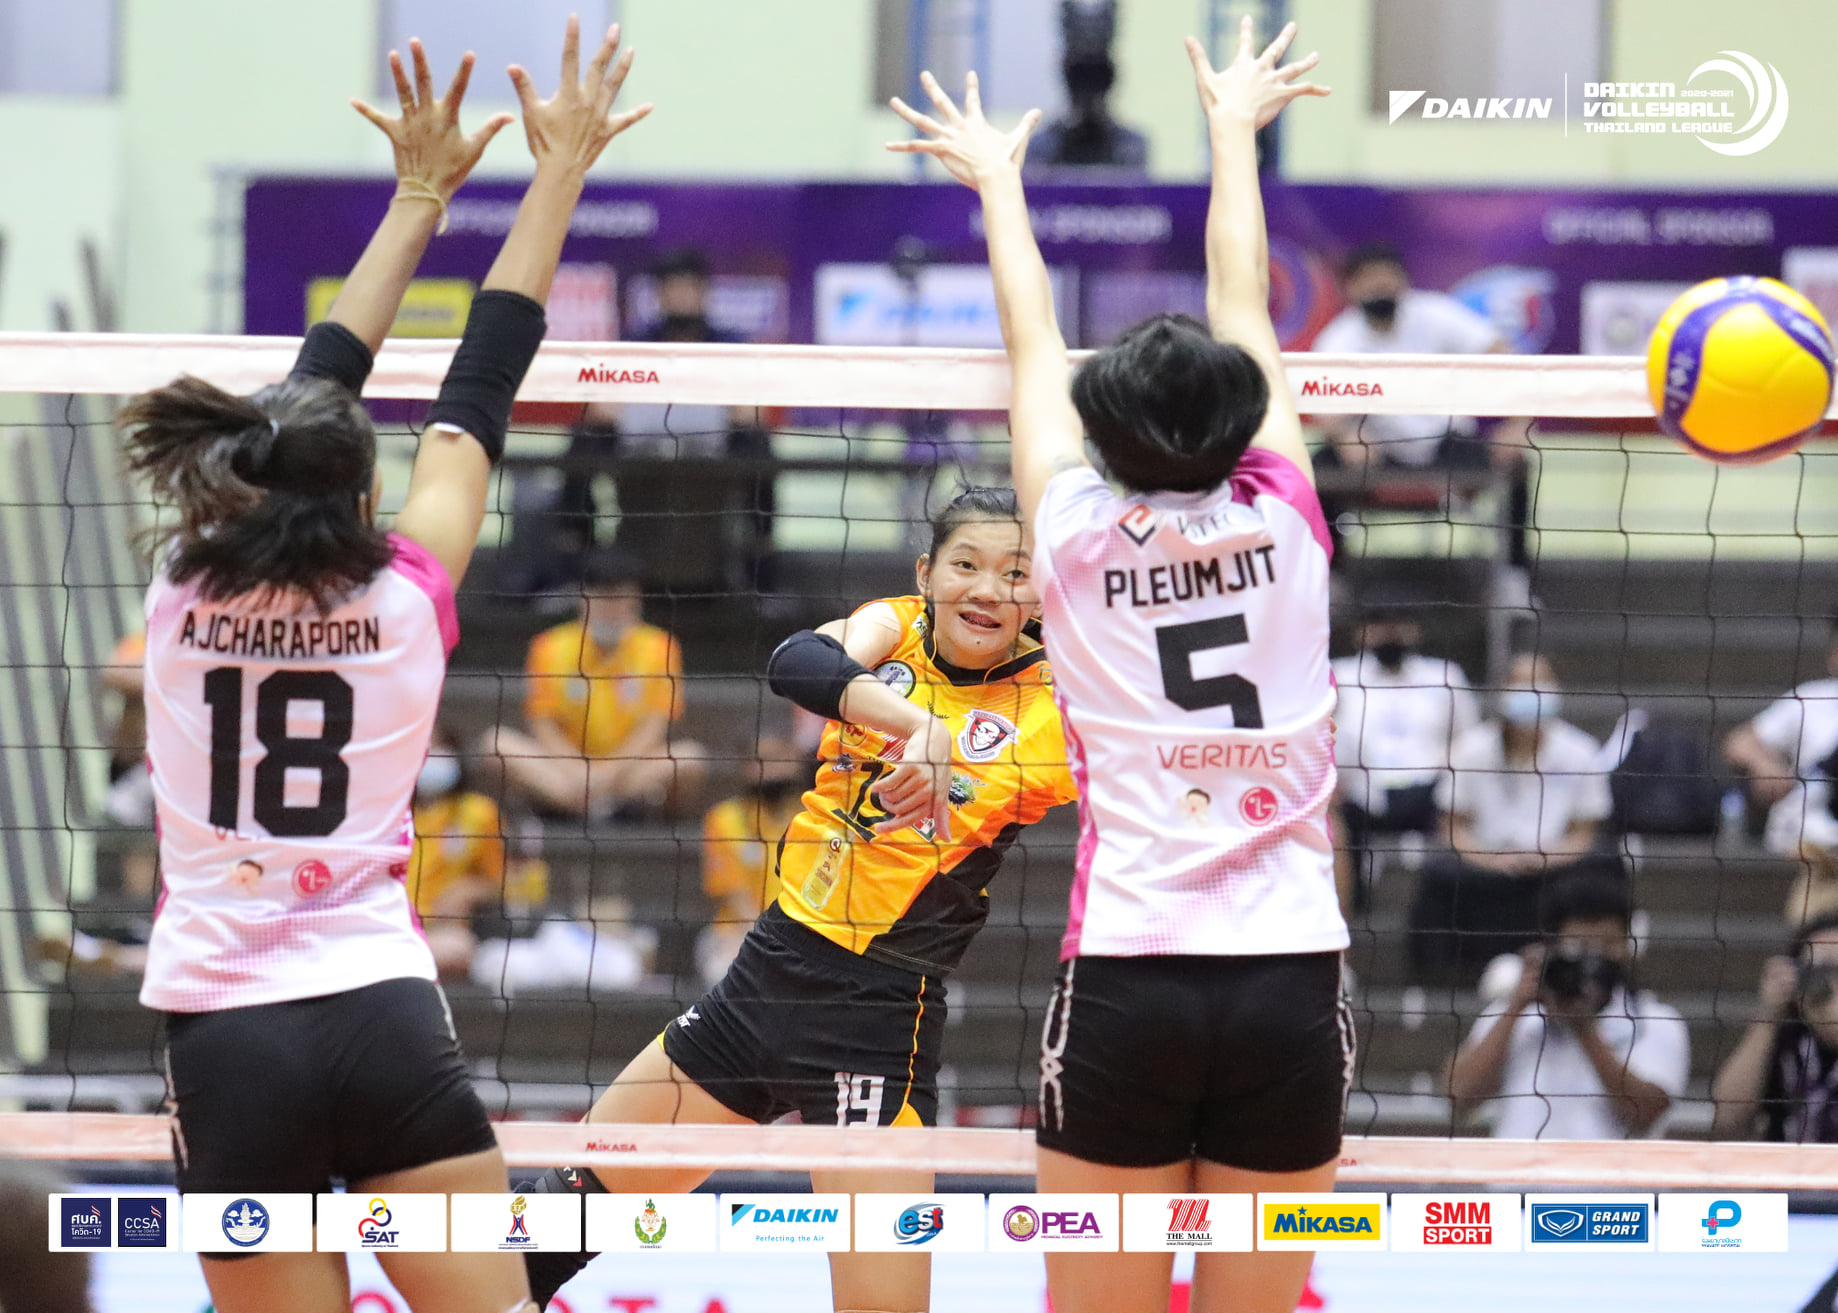 NAKHON RATCHASIMA, DIAMOND FOOD MAKE CLEAN SWEEP ON OPENING DAY OF SECOND-WEEK THAILAND LEAGUE FINALS